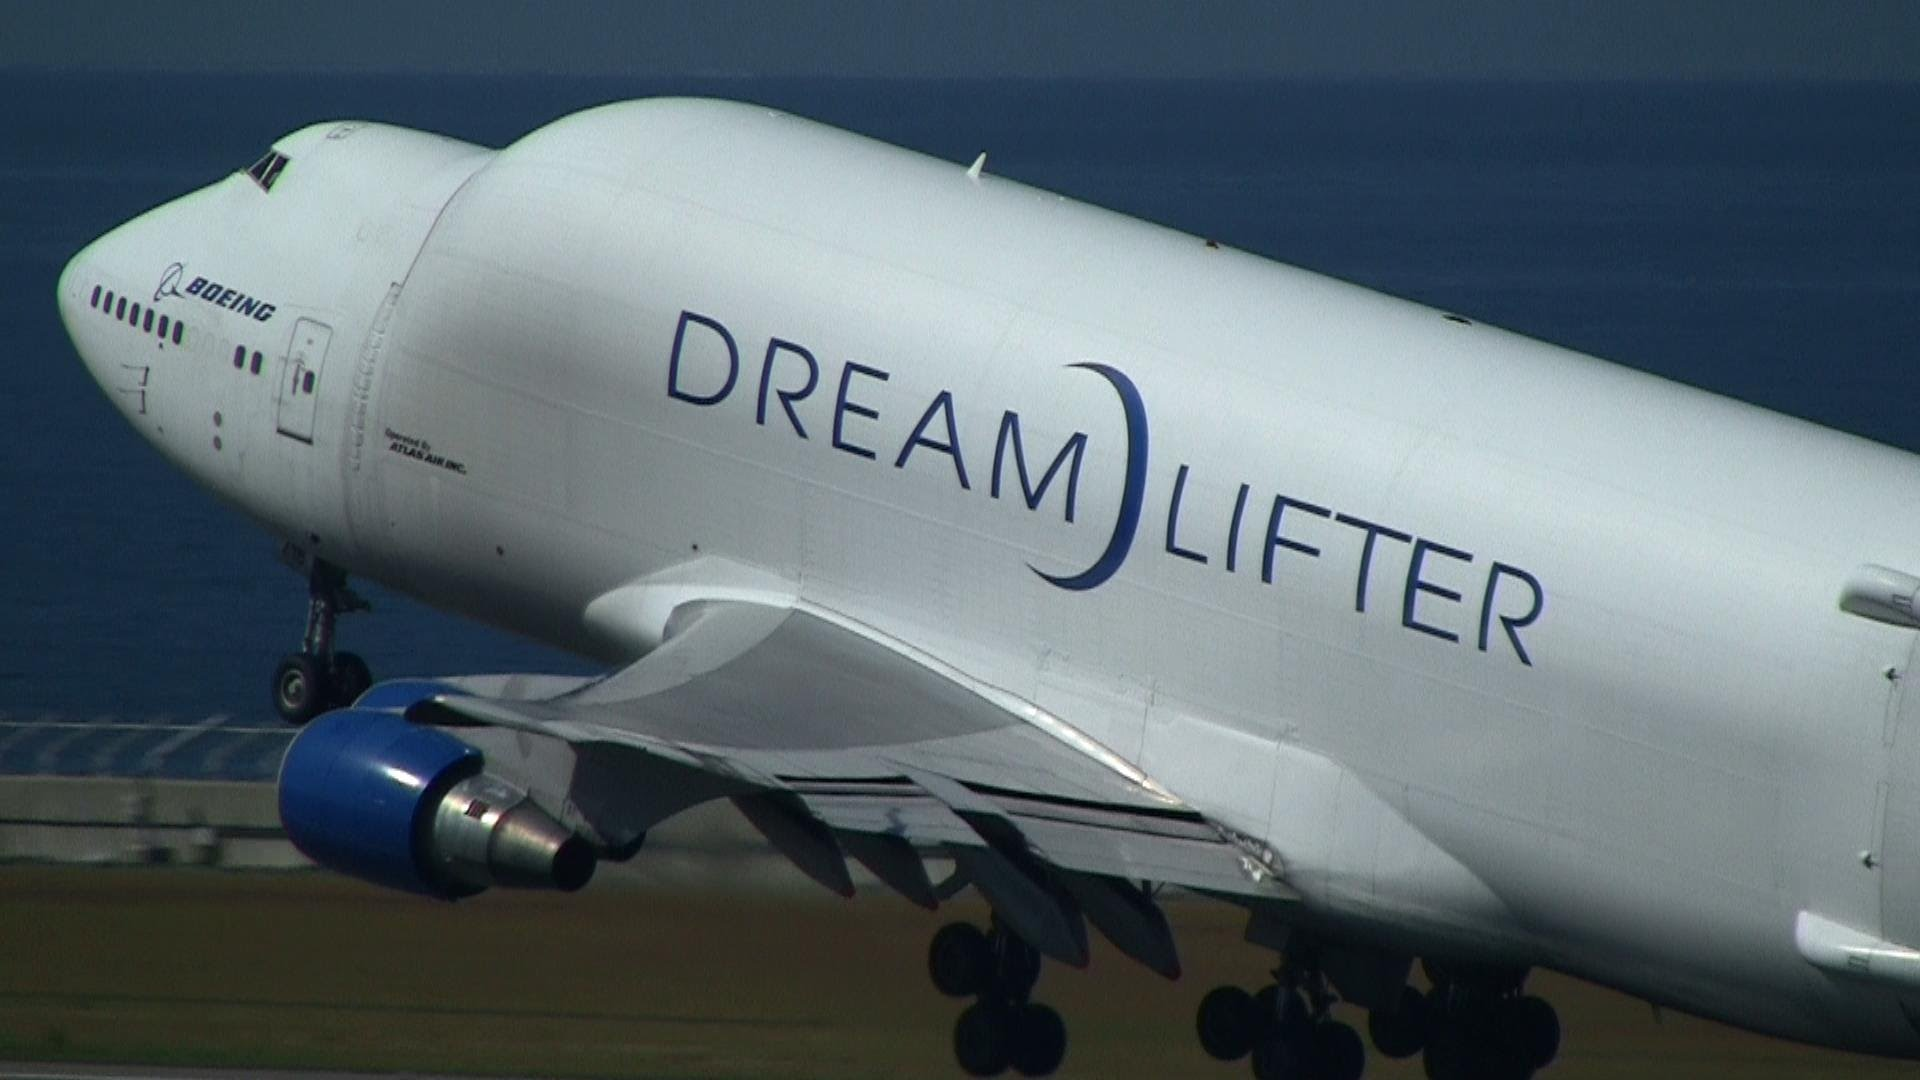 Boeing 747 Dreamlifter Wallpapers Vehicles Hq Boeing 747 Dreamlifter Pictures 4k Wallpapers 2019